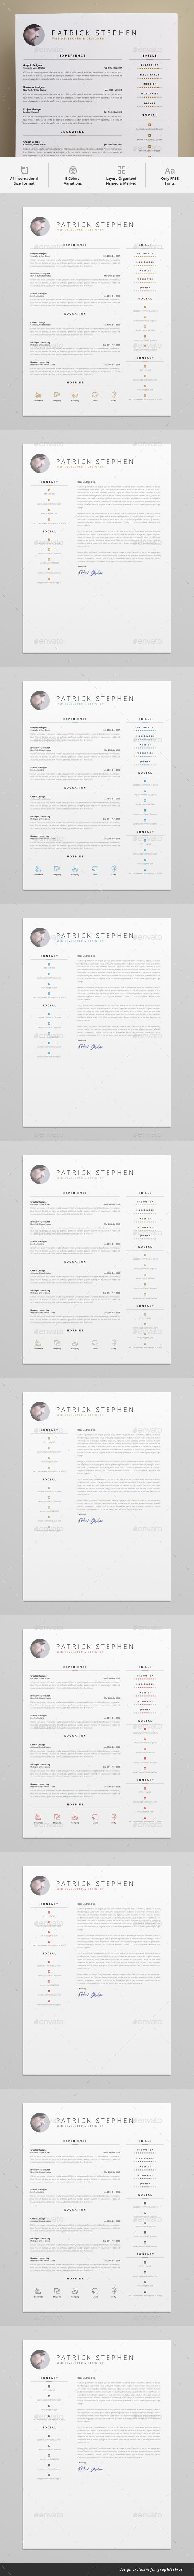 Best Resume  Personal Website Images On   Design